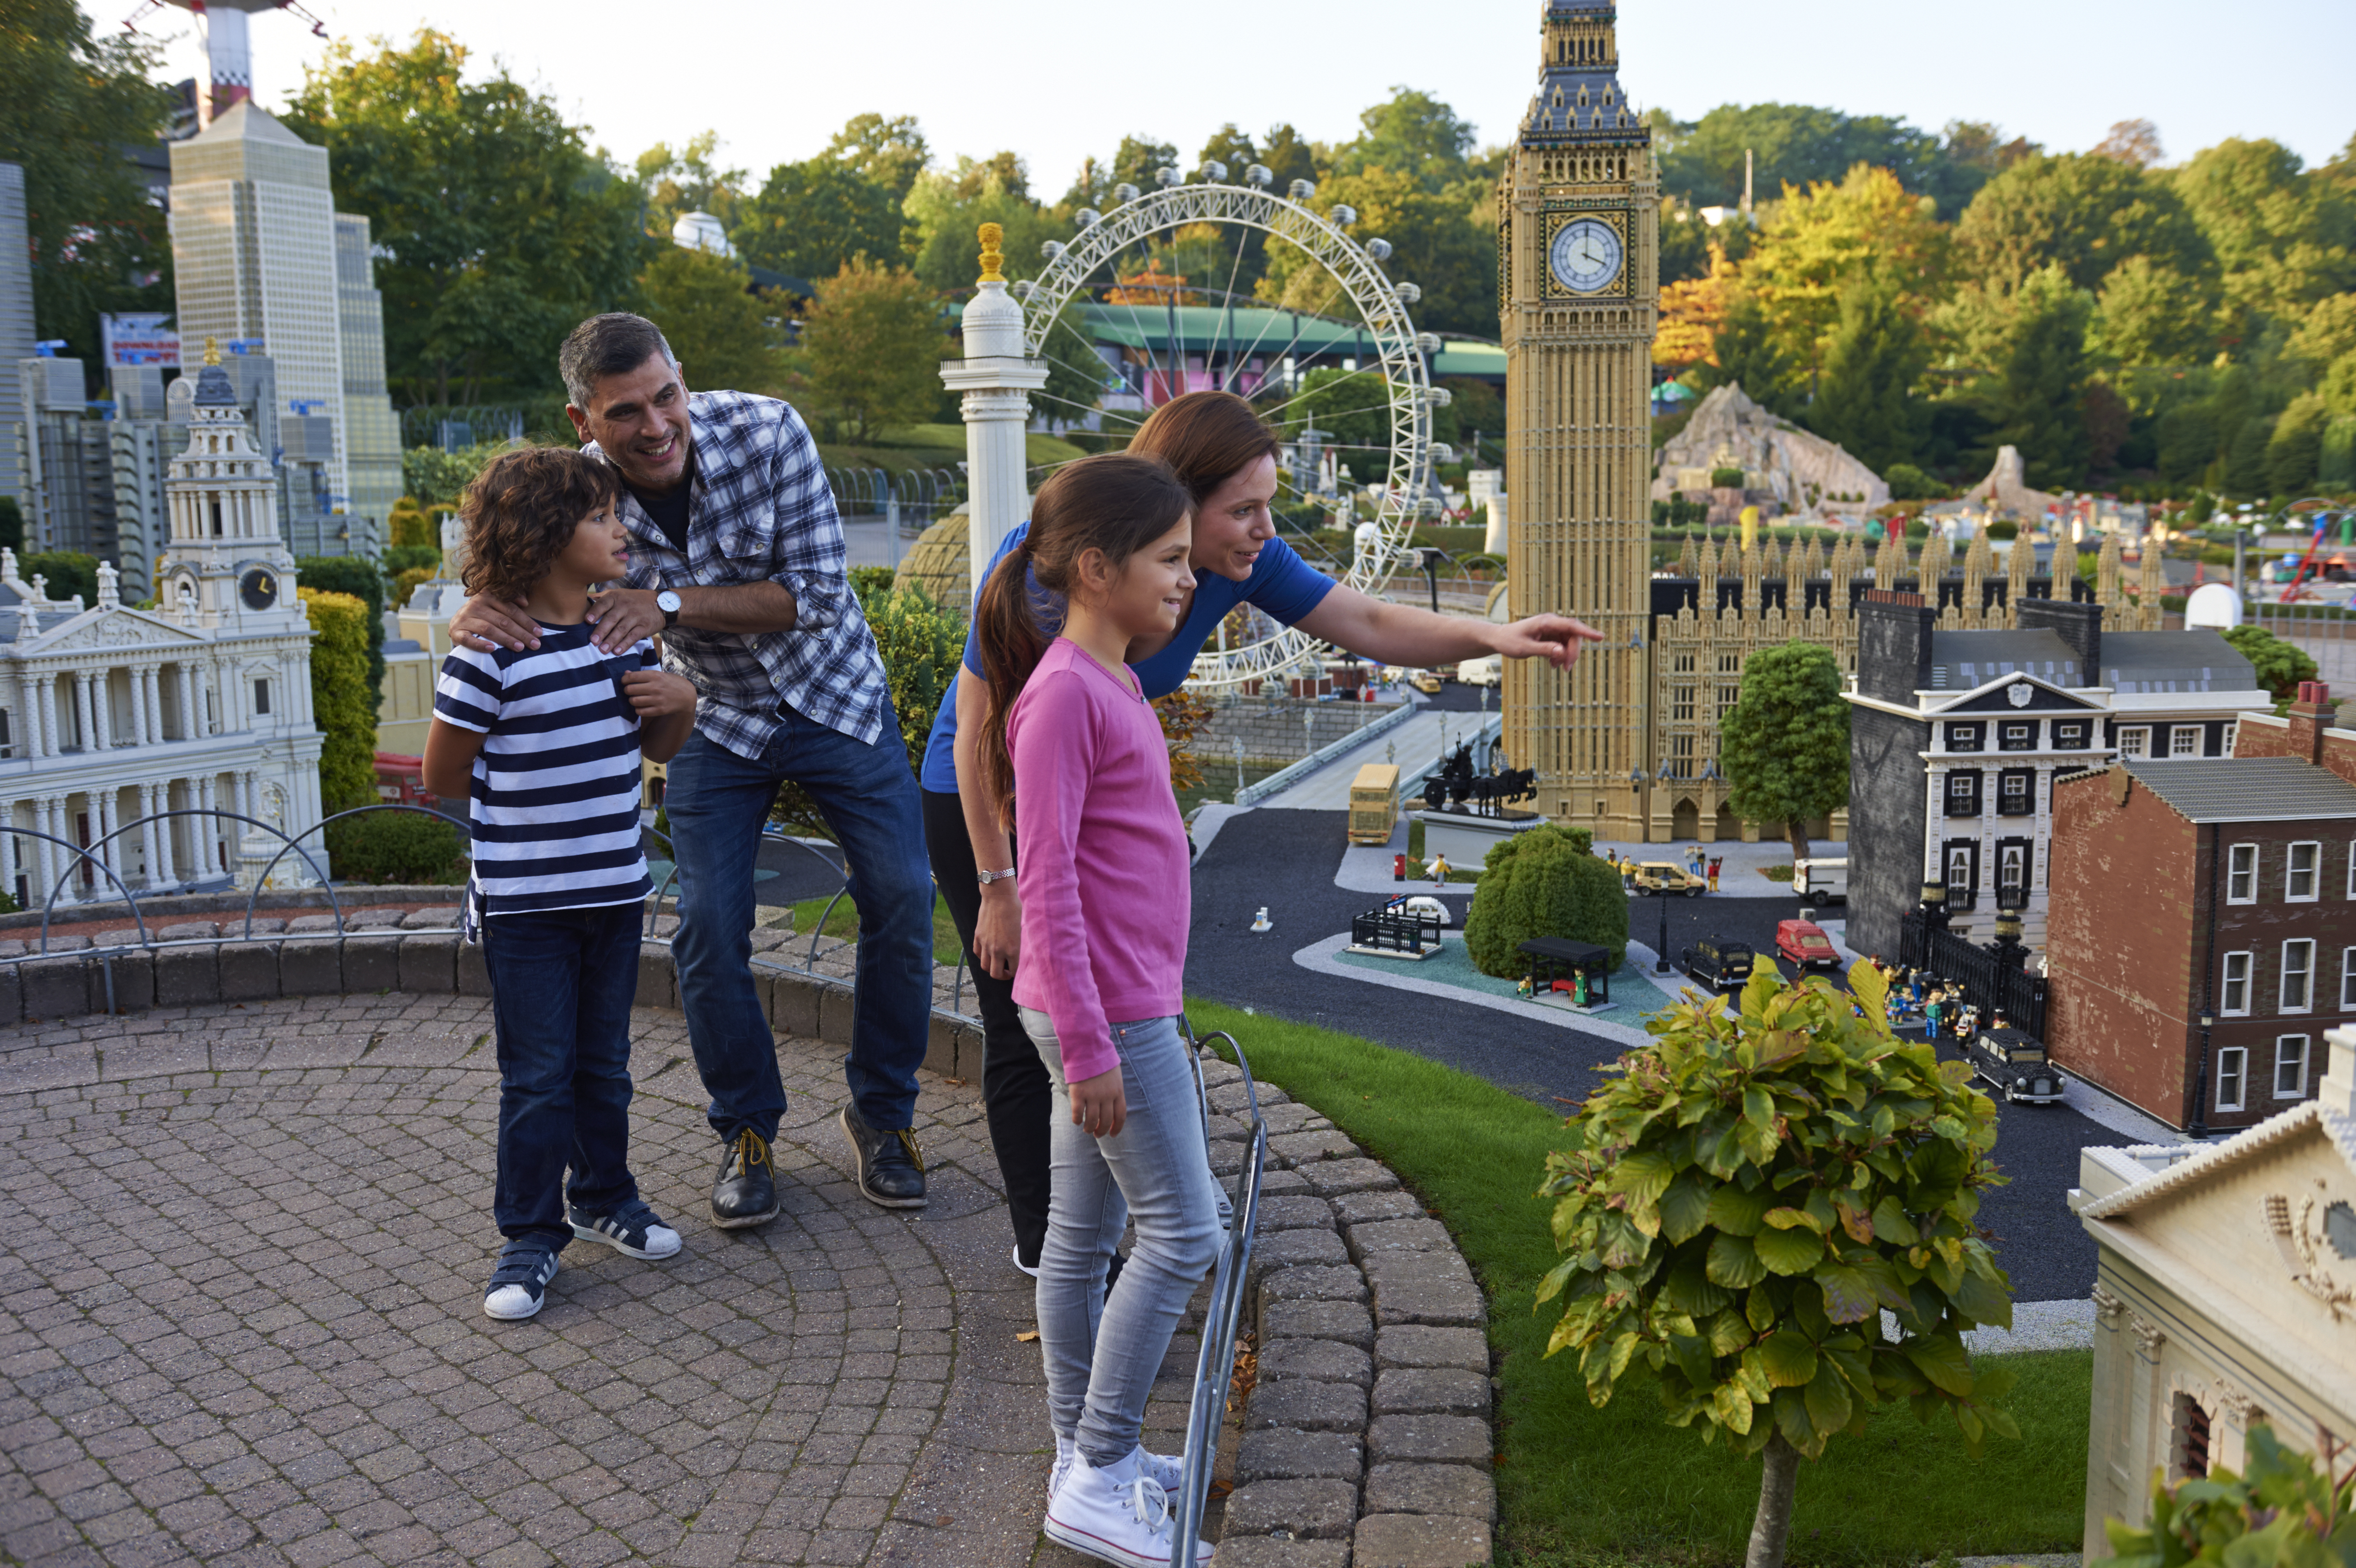 Miniland at the LEGOLAND Windsor Resort